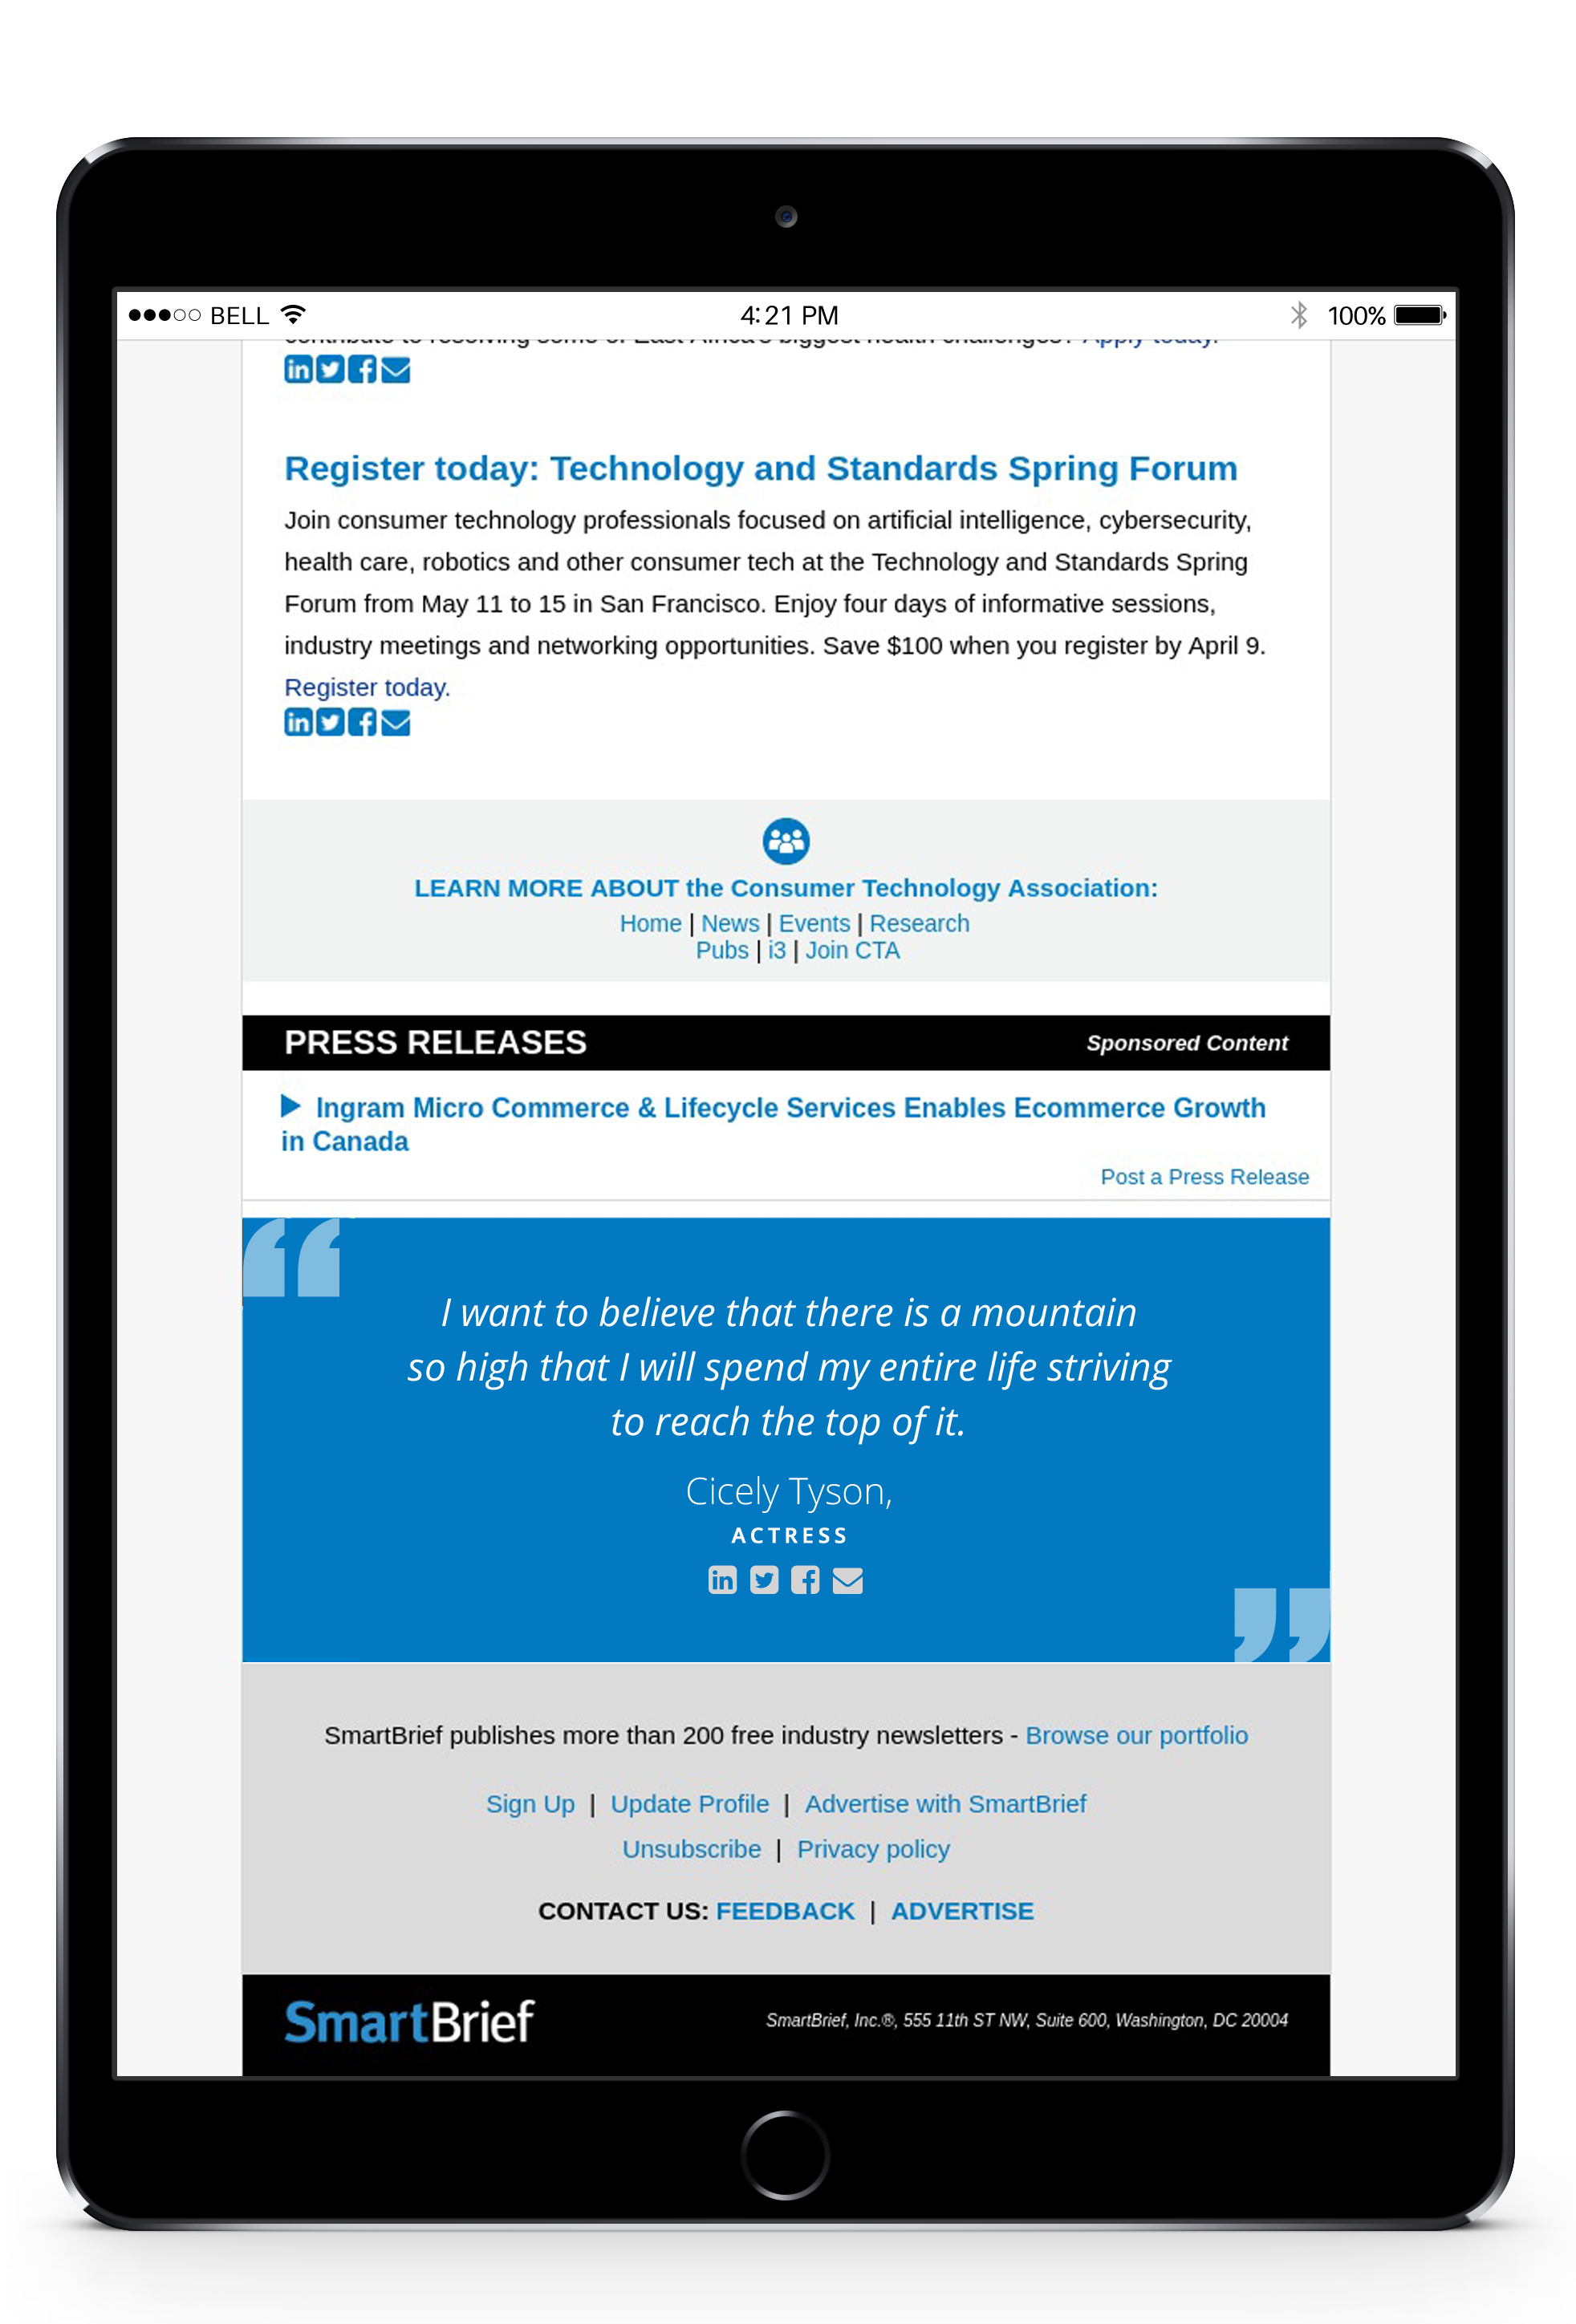 SmartBrief Press Release displayed on an iPad